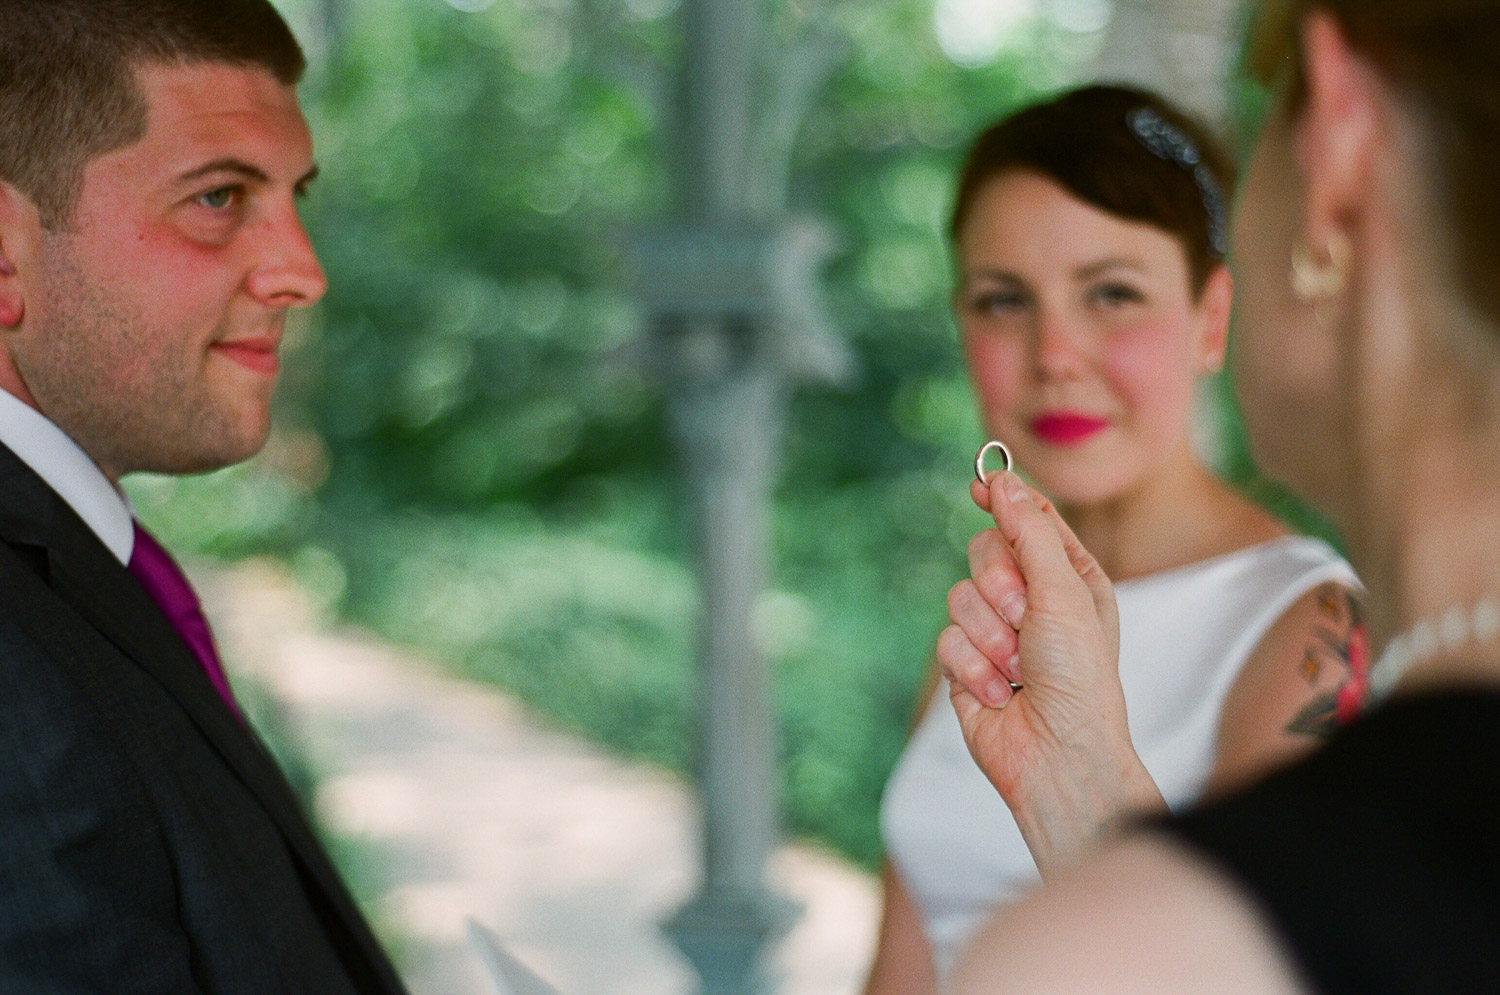 nyc central park mini wedding ring exchange photo by wendy g photography